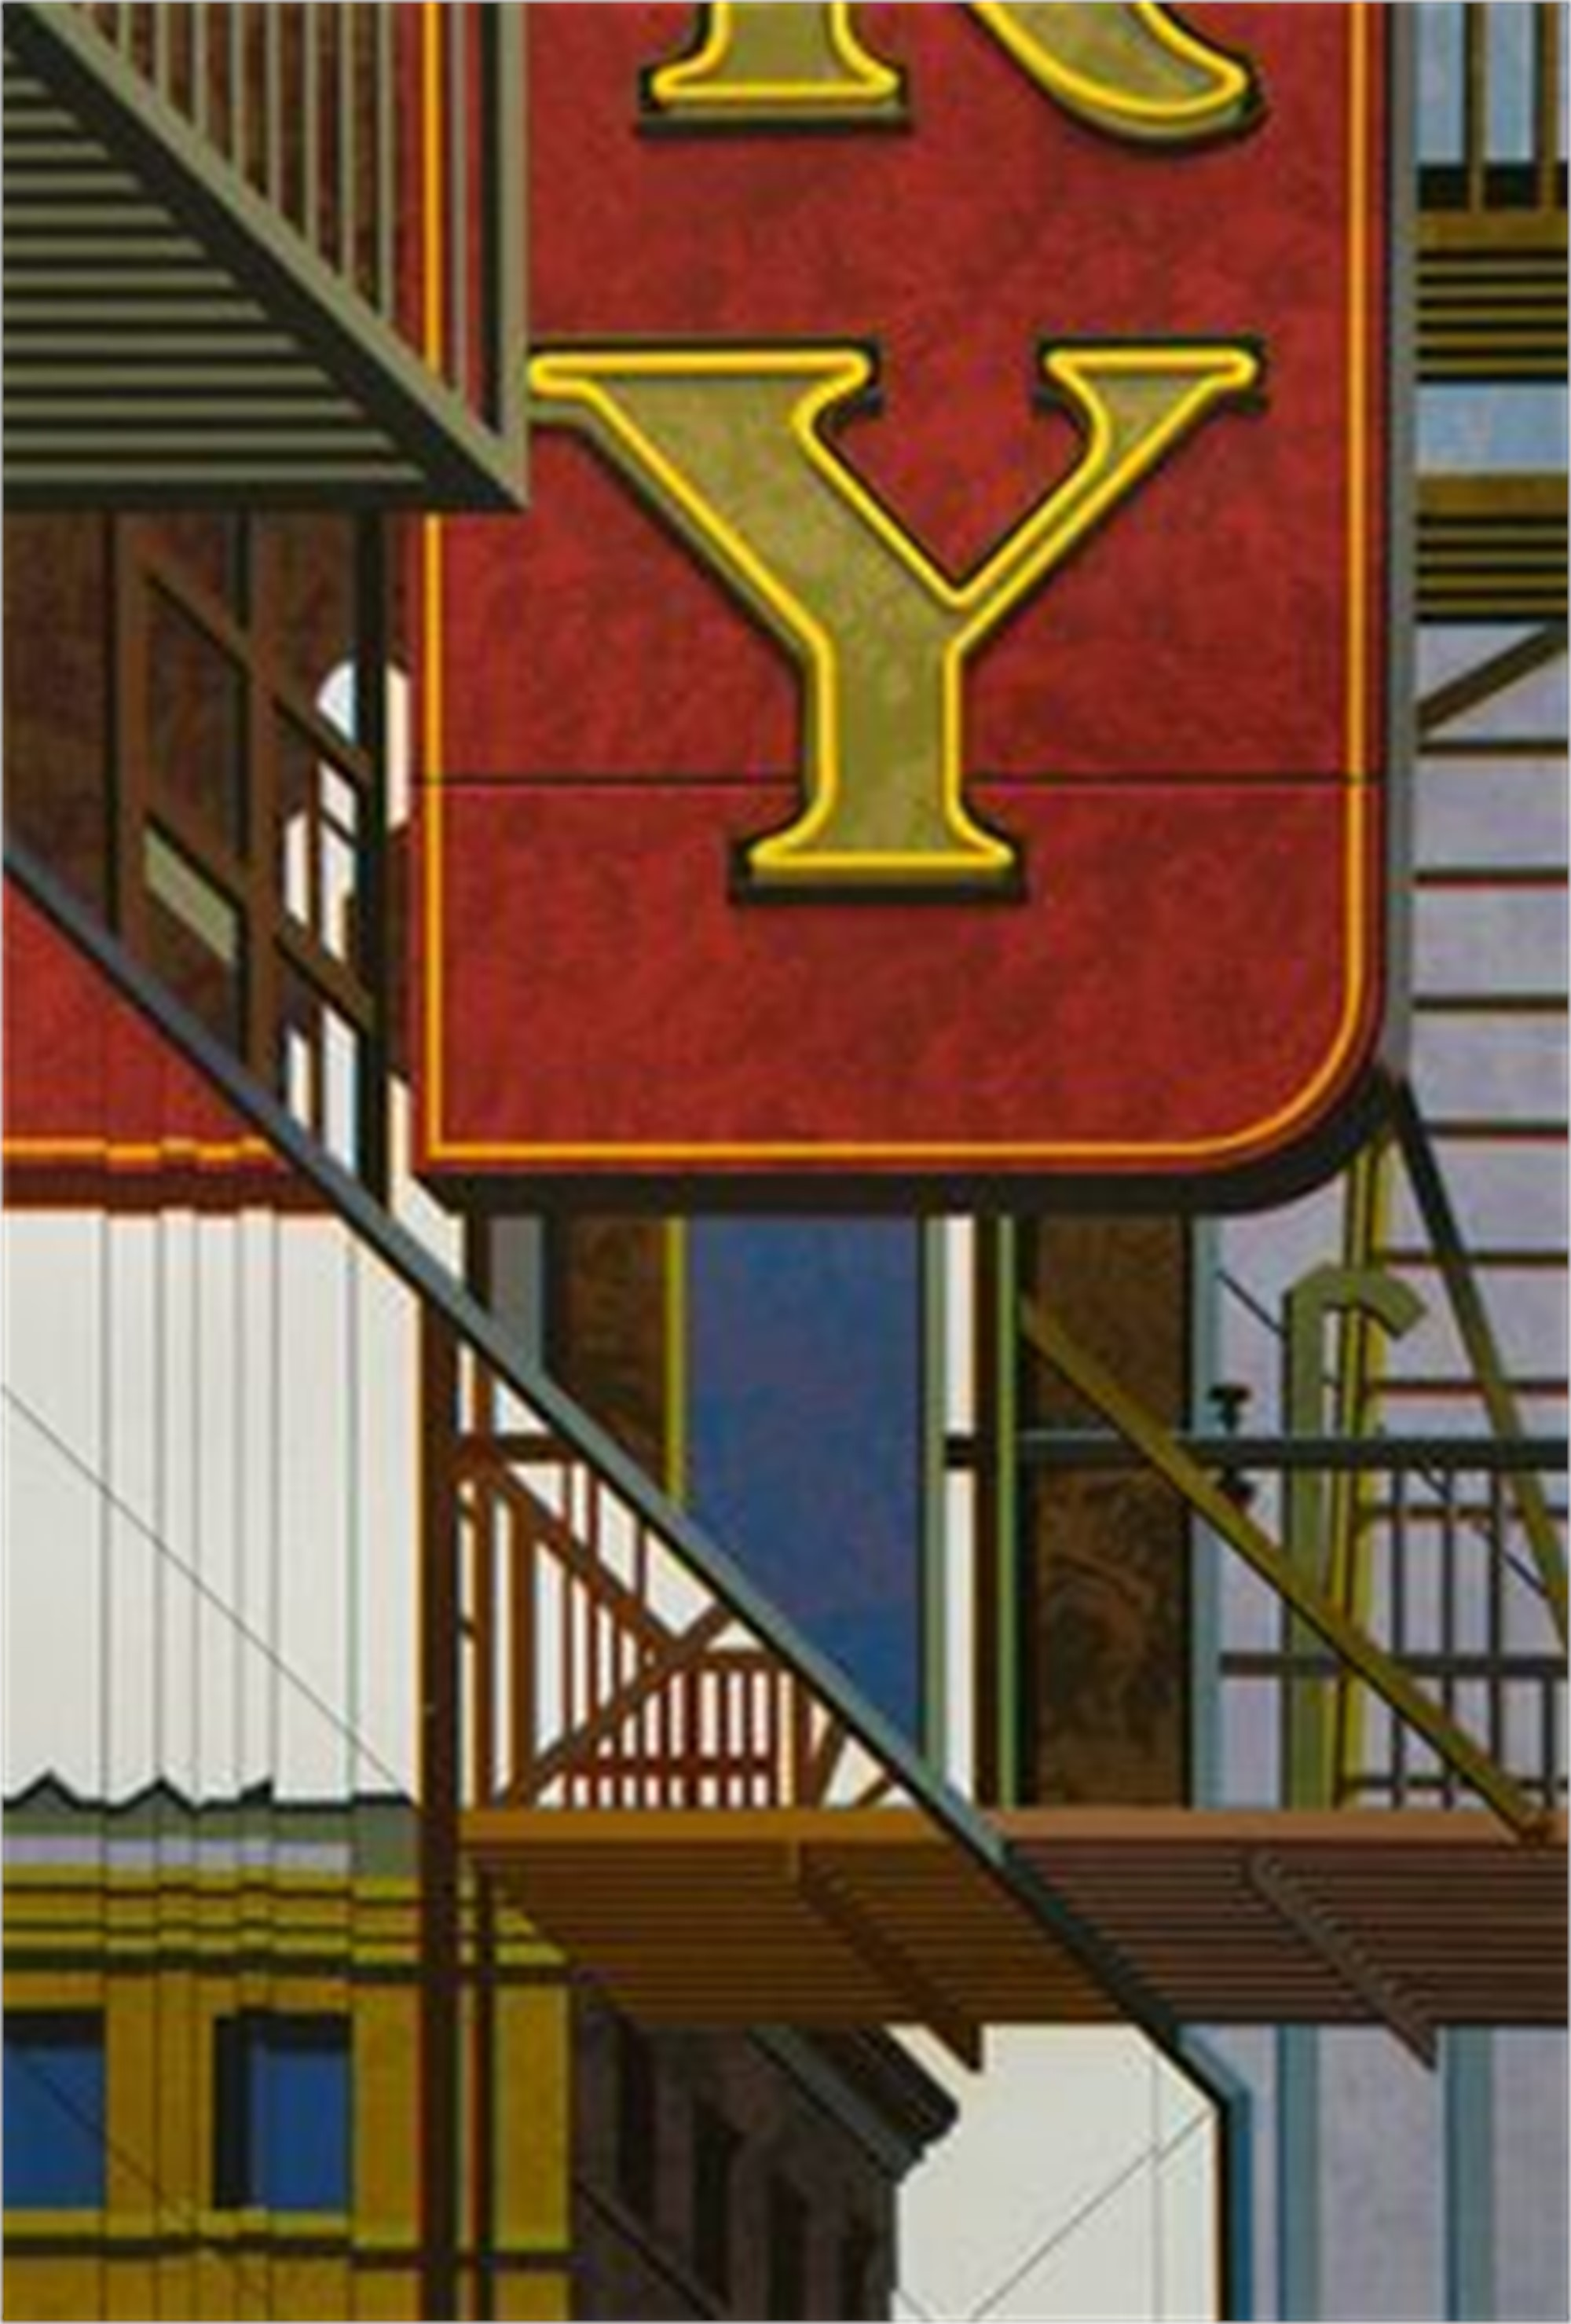 An American Alphabet: Y by Robert Cottingham